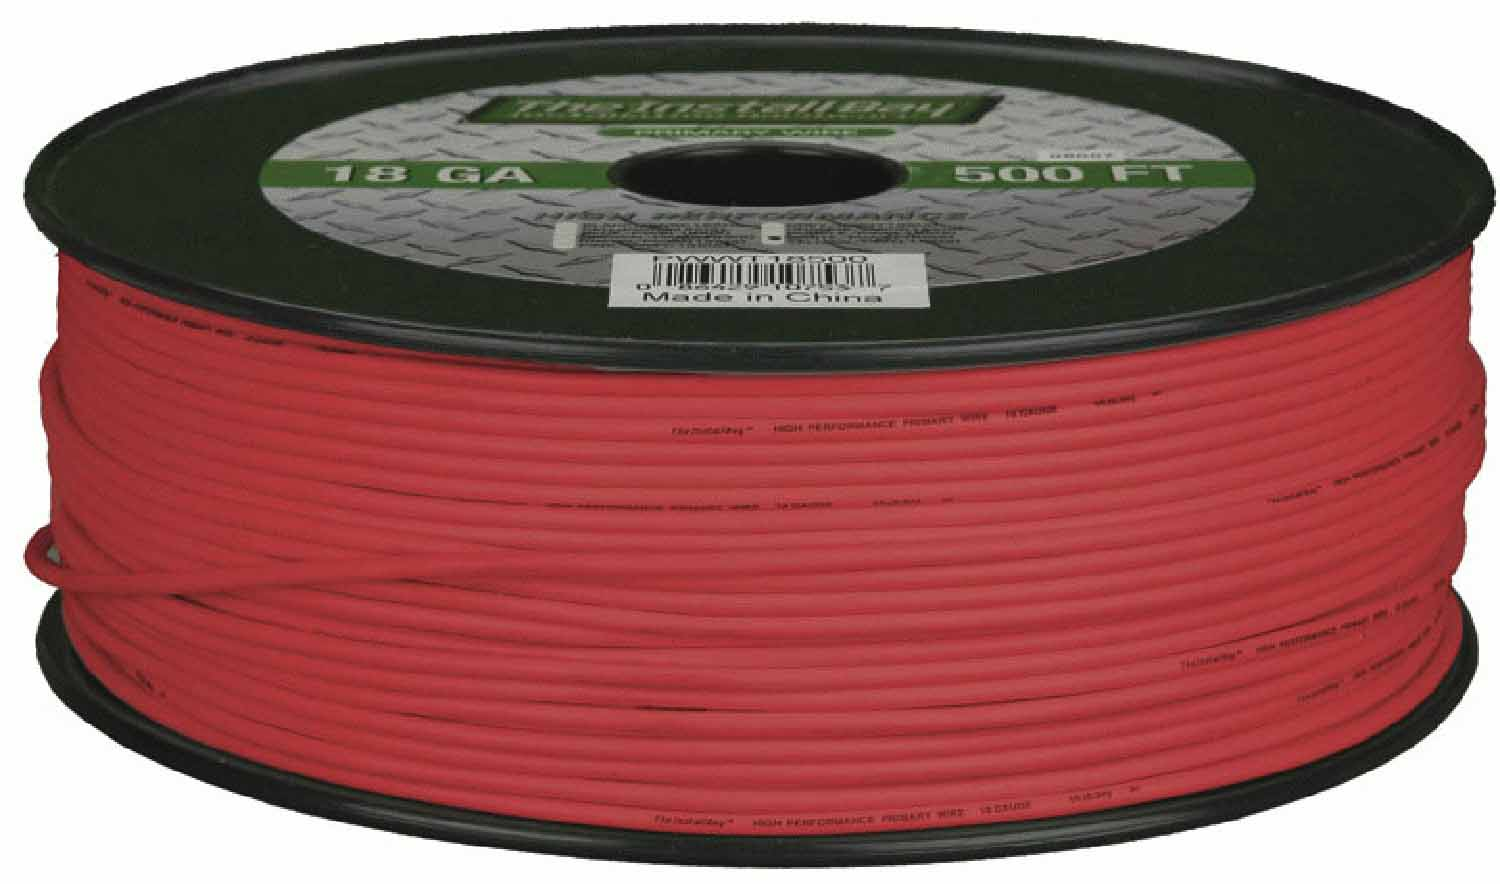 PWRD16500 - Metra 500 Foot Roll of 16 Gauge Primary Wire (Red)